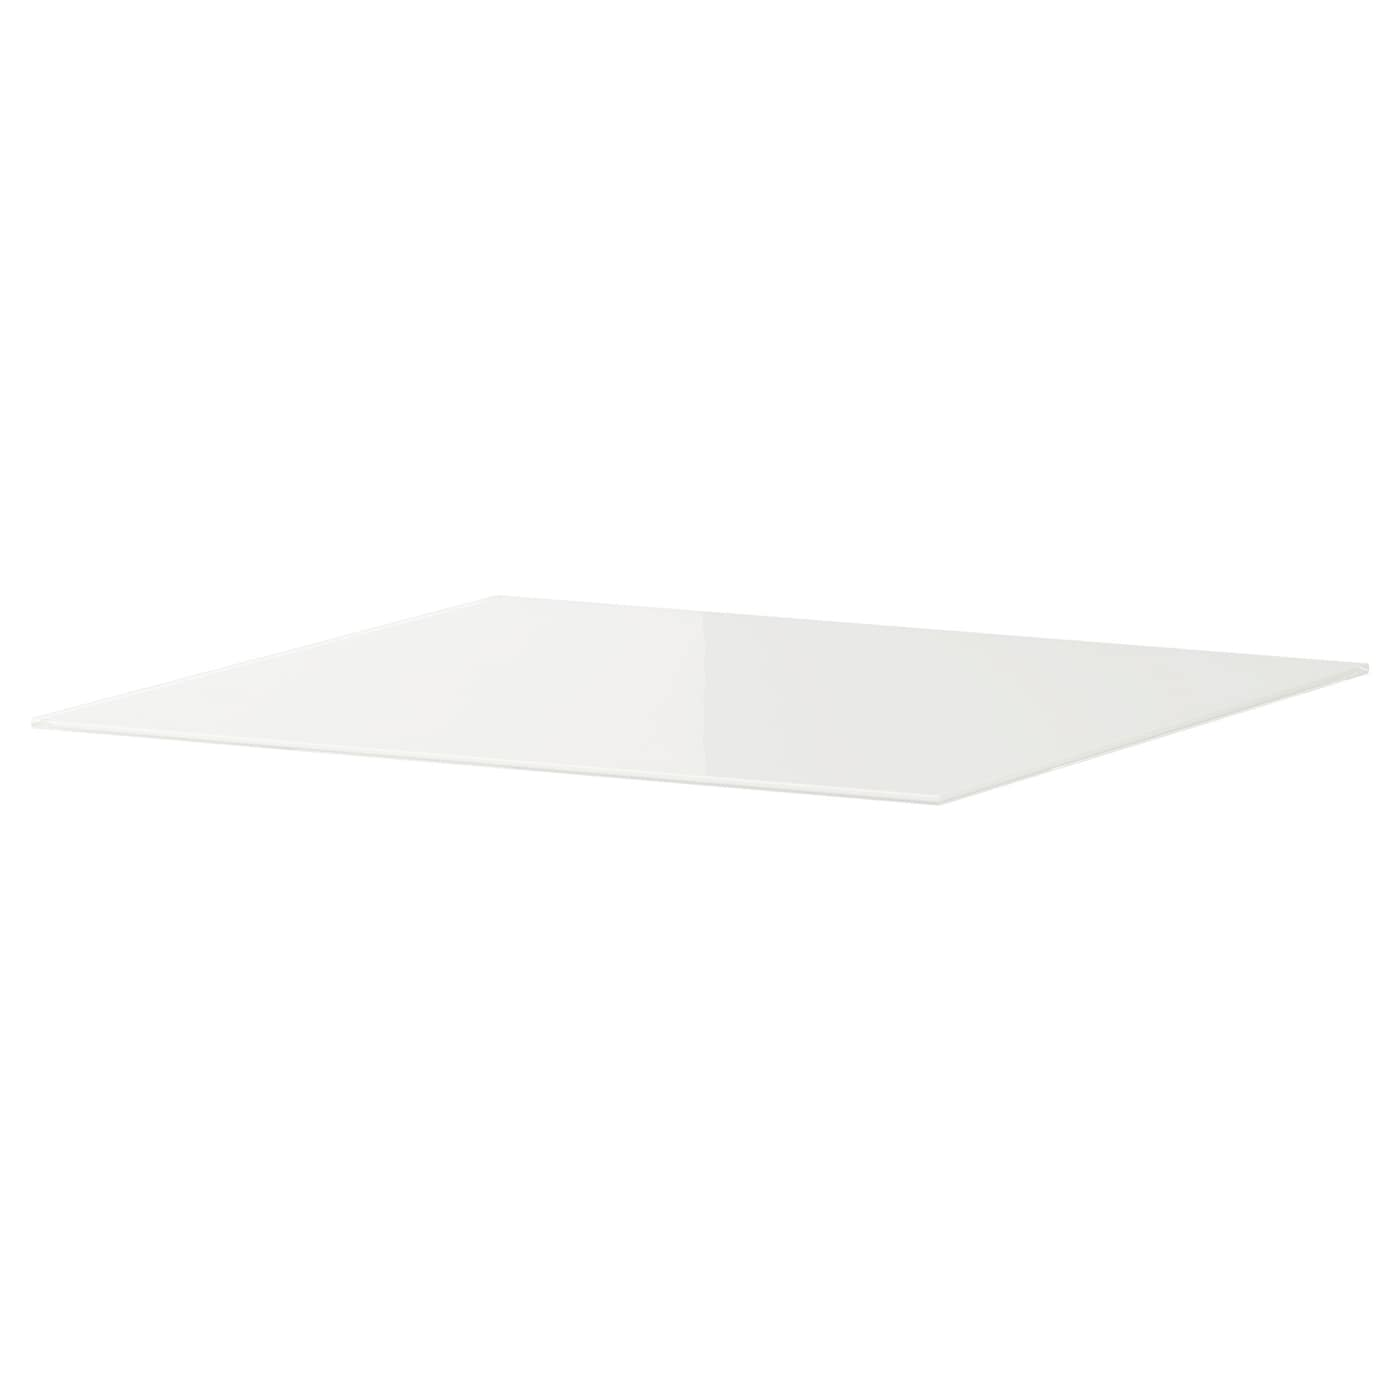 IKEA MALM glass top